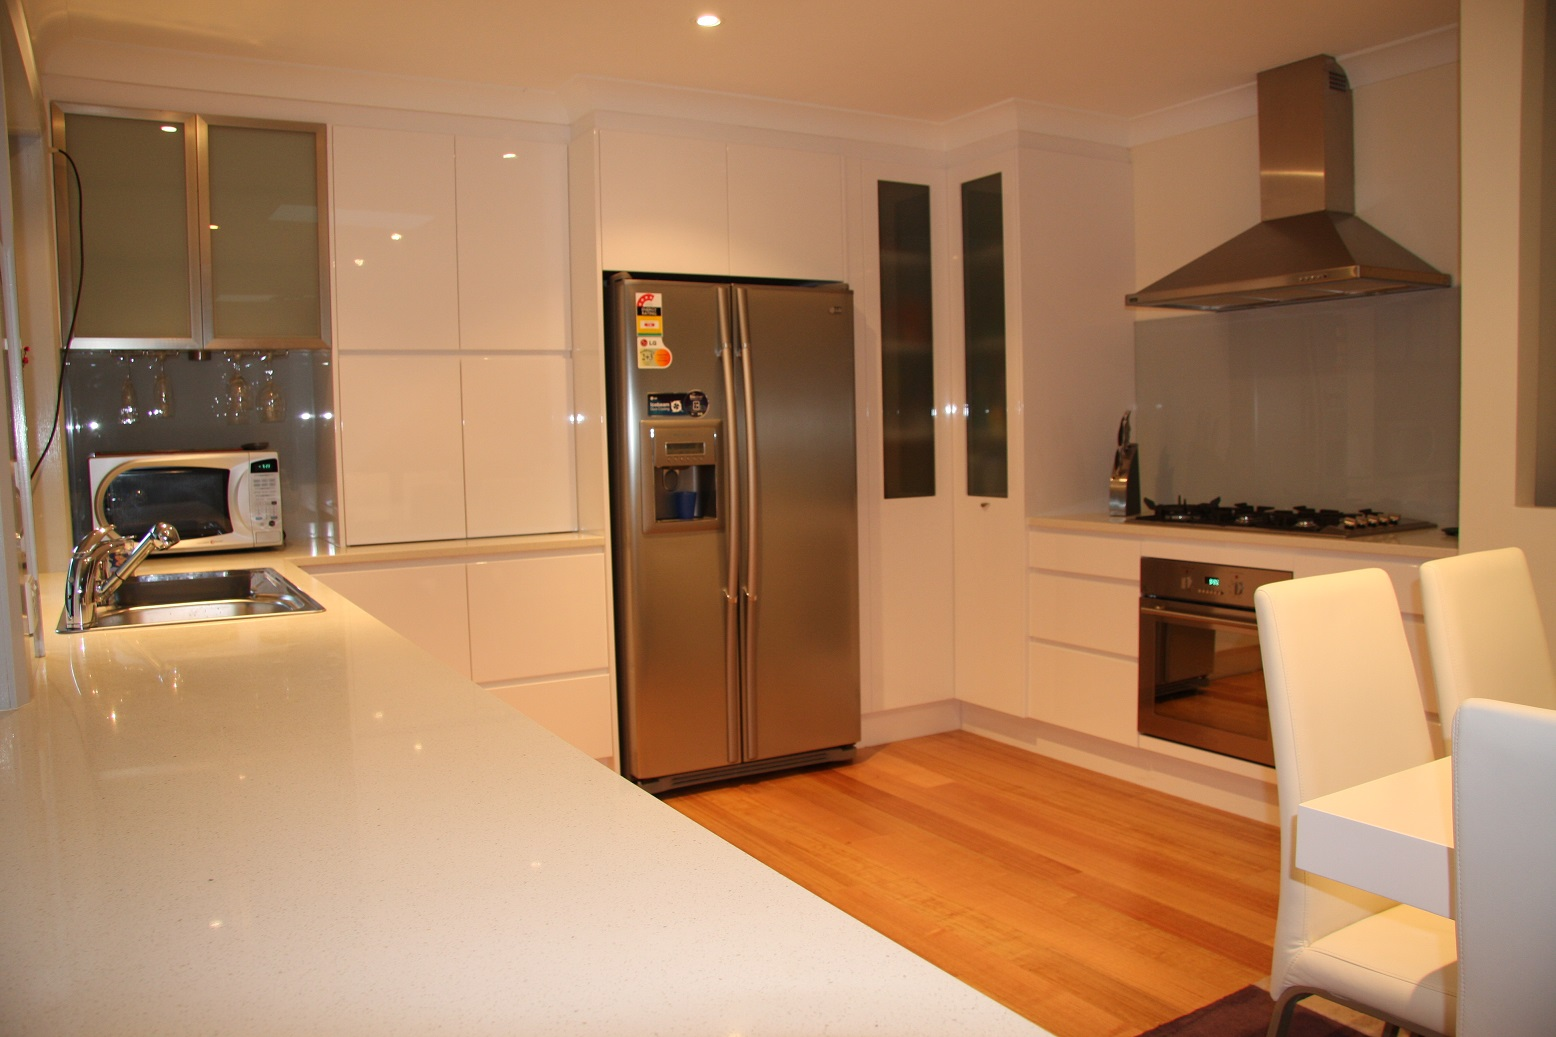 Kitchen Cabinets Pictures Gallery Kitchen Gallery Lifestyle Creative Renovations